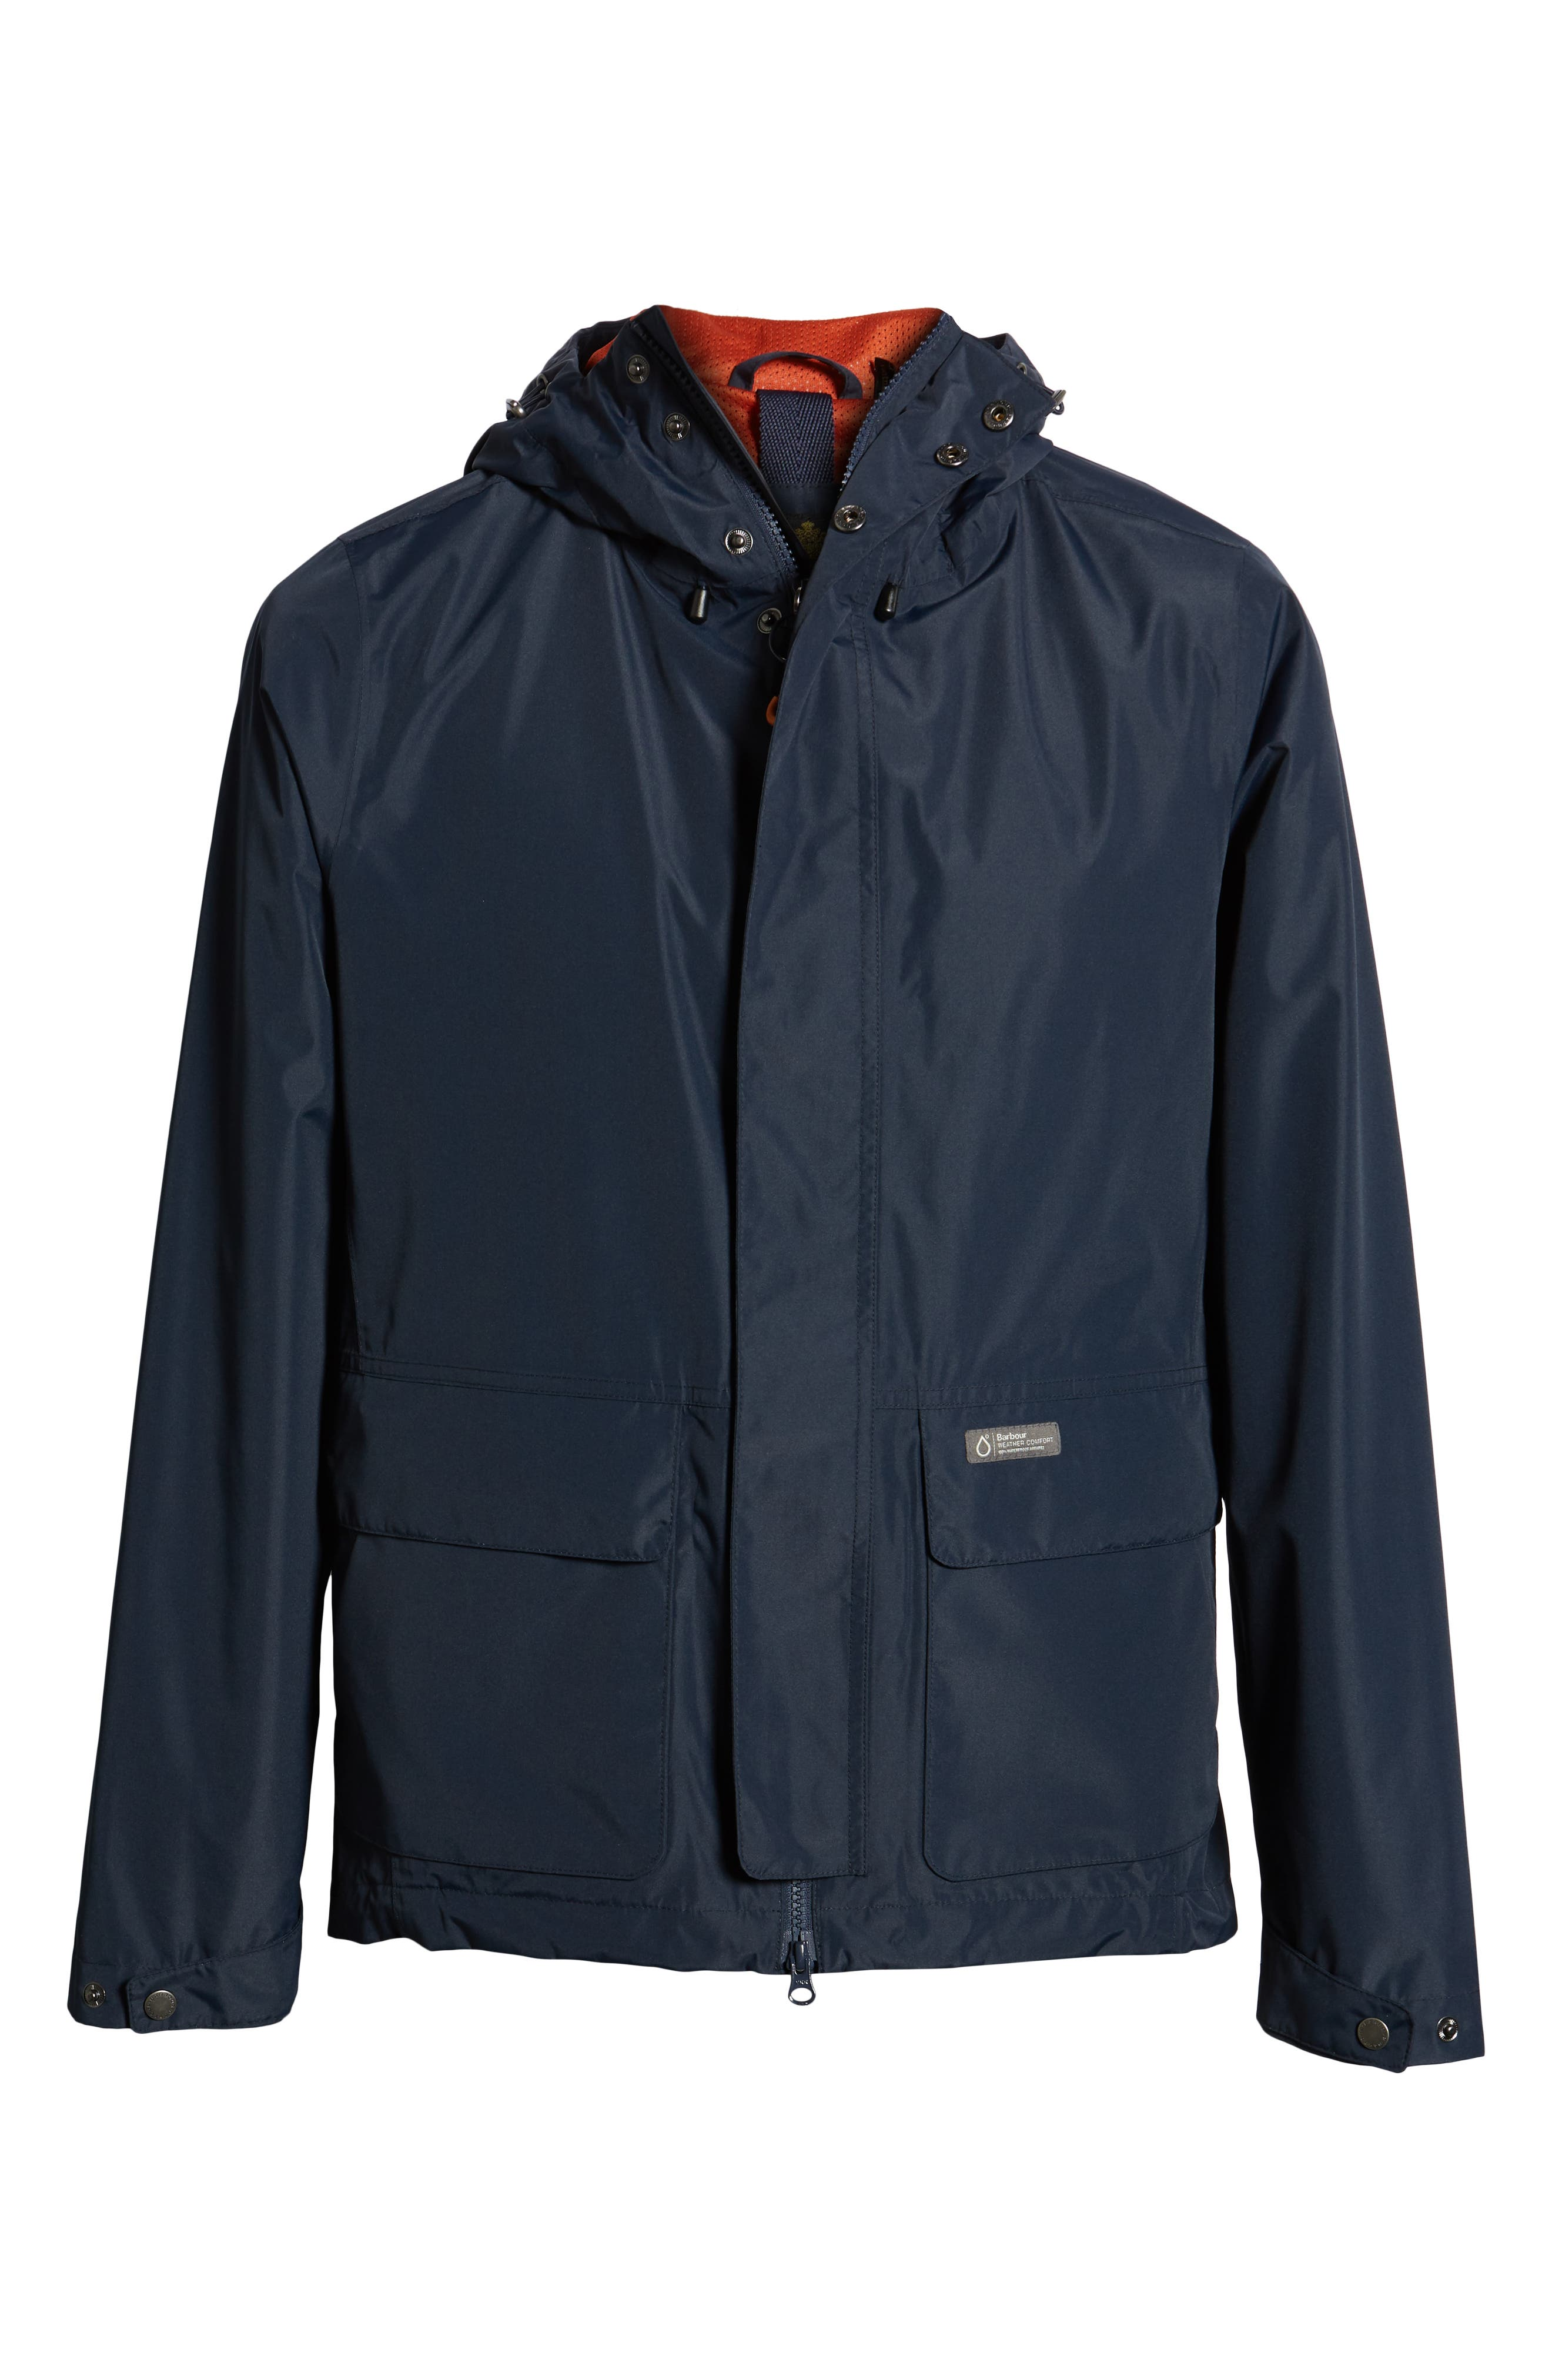 New Peter Storm Mens Cyclone Waterproof Jacket Outdoor Clothing